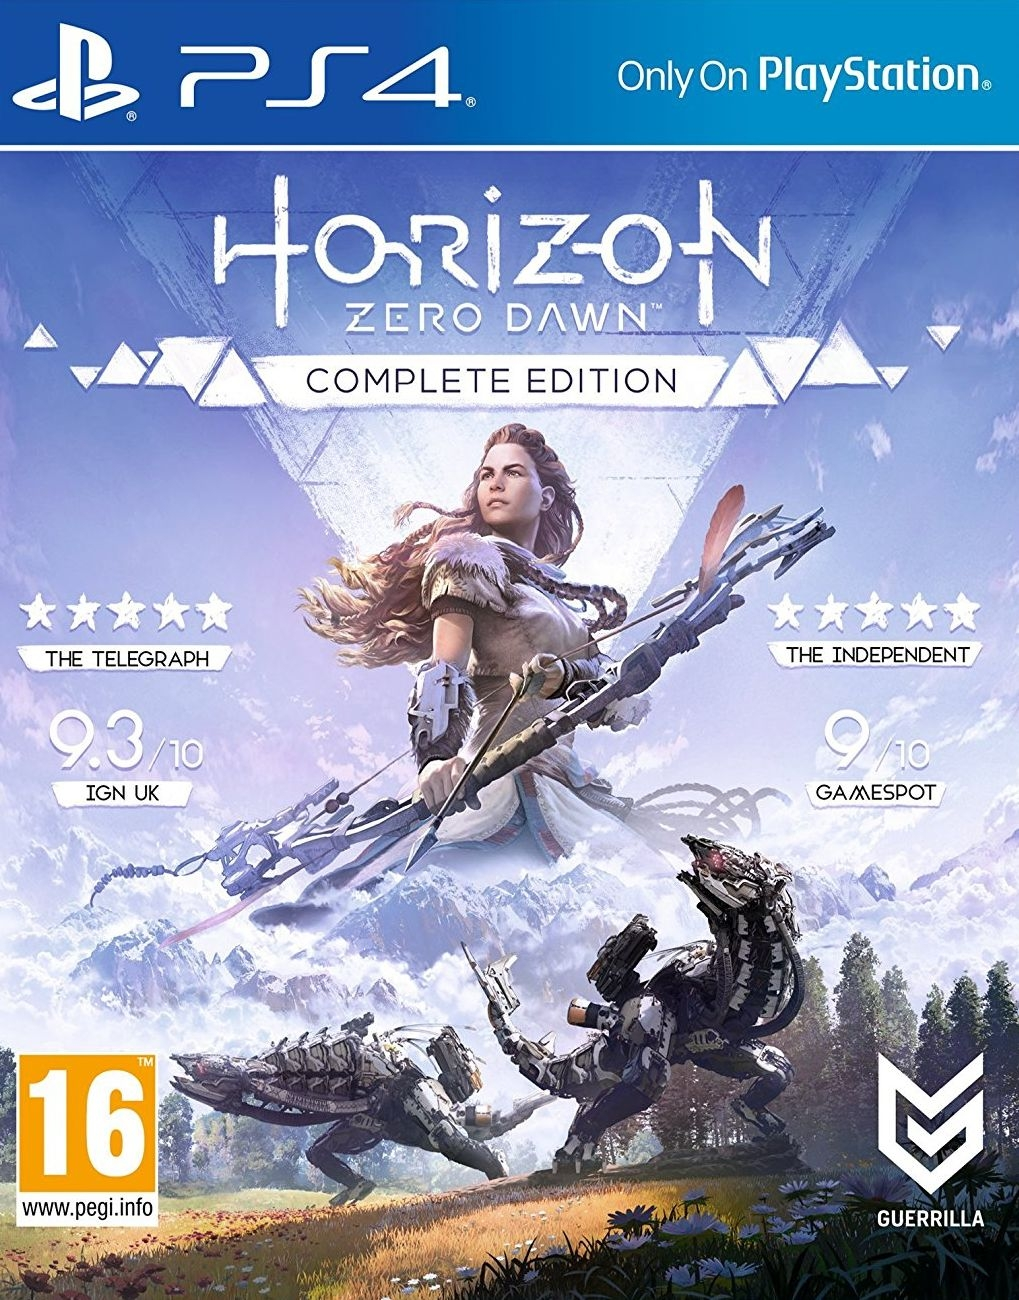 235e74d90c3 PS4 Horizon: Zero Dawn Complete Edition